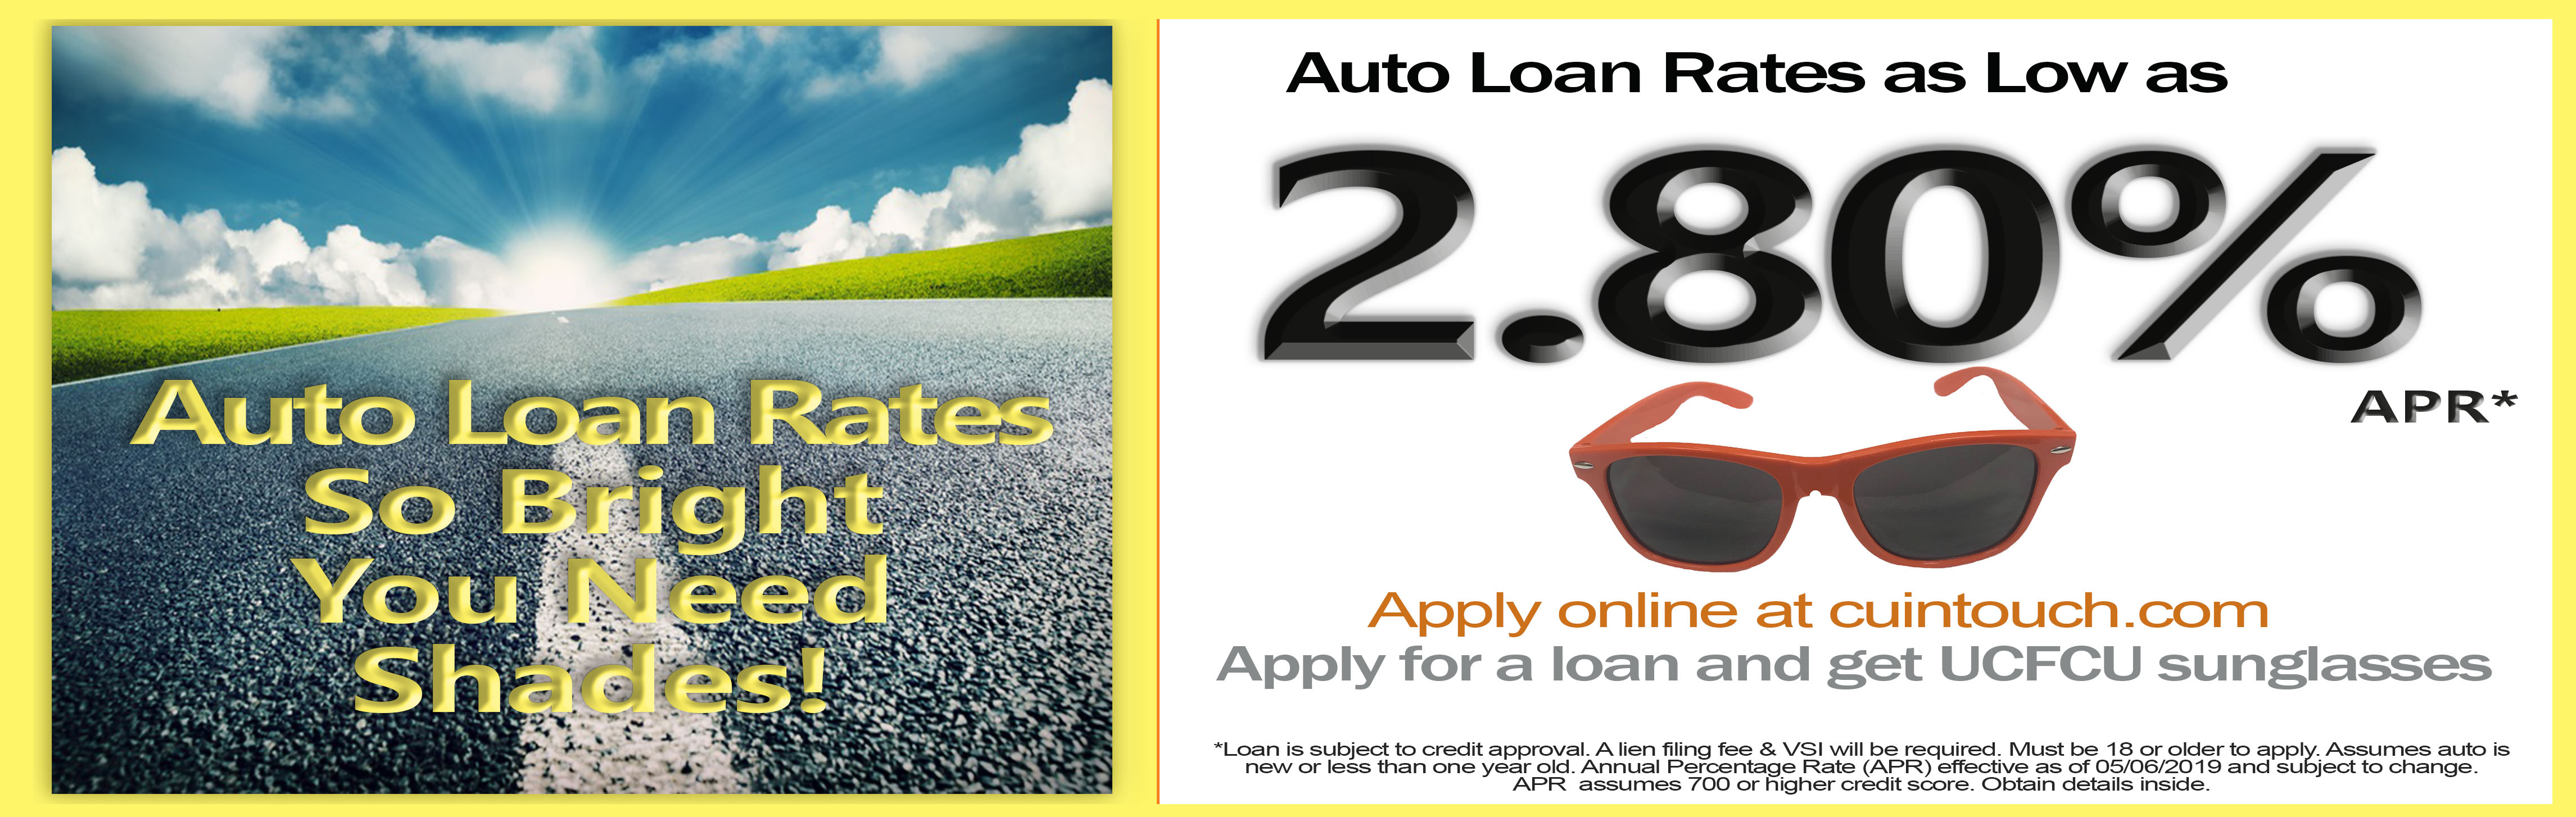 Auto Loan Summer Sale 2.80%